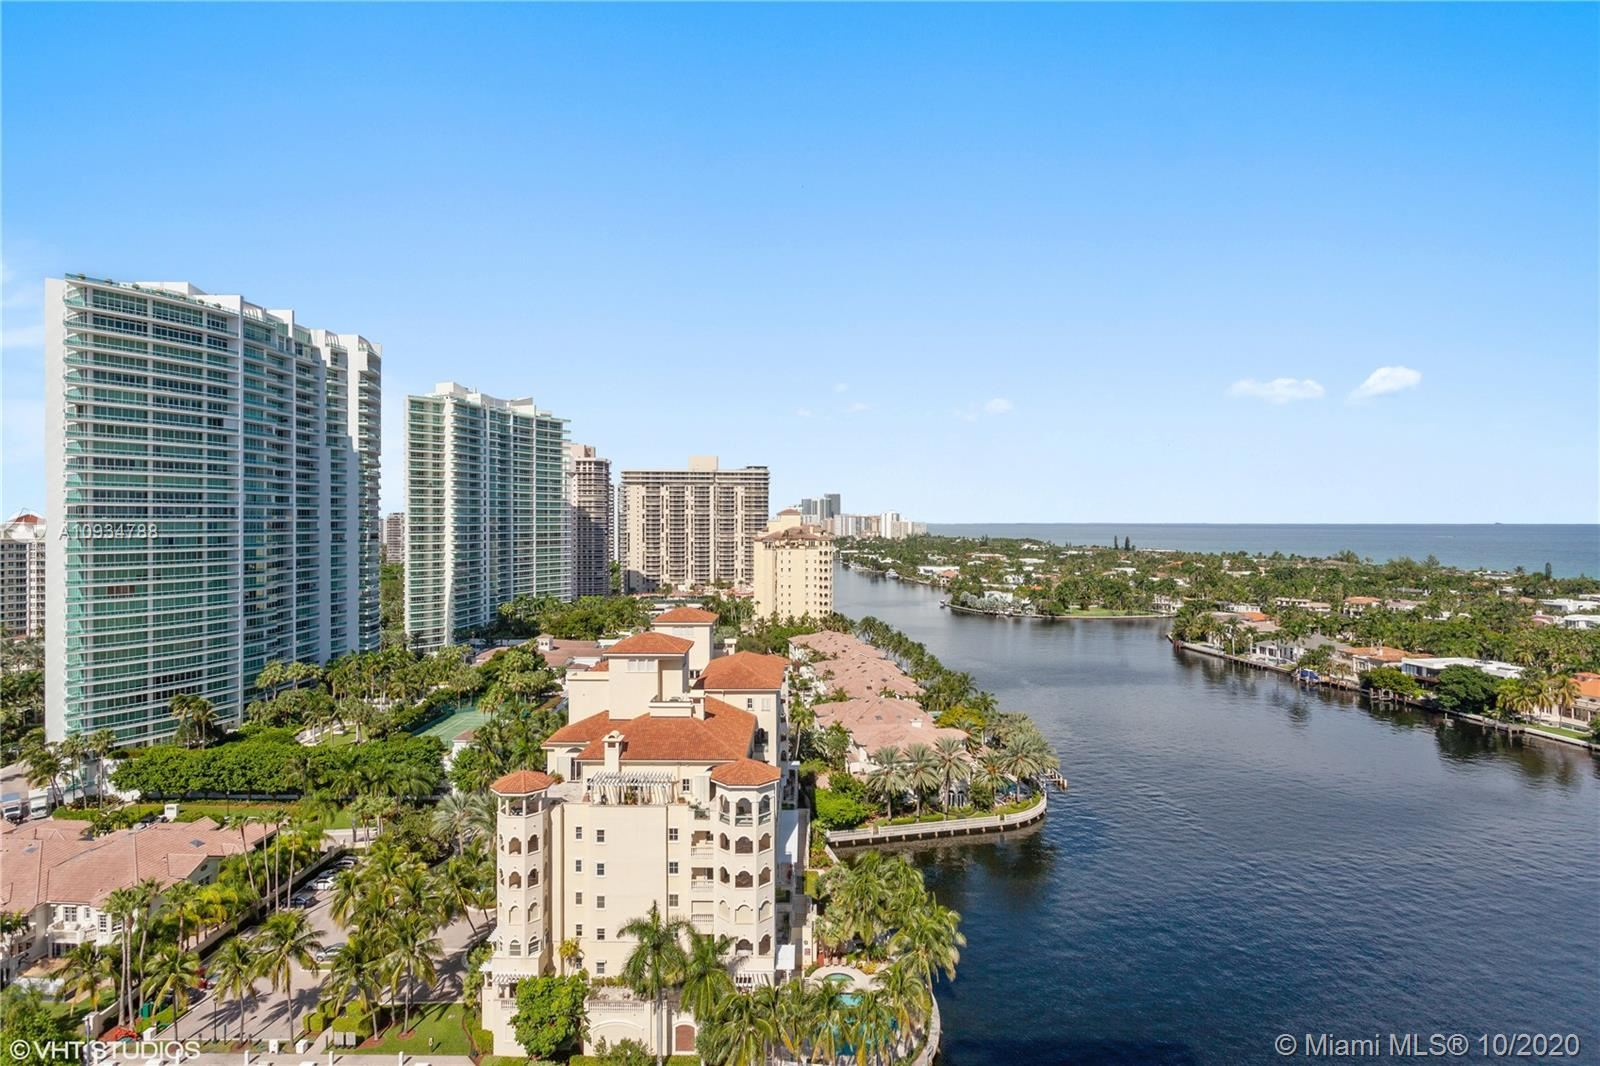 19707 Turnberry Way #28K, Aventura, FL 33180 - #: A10934788